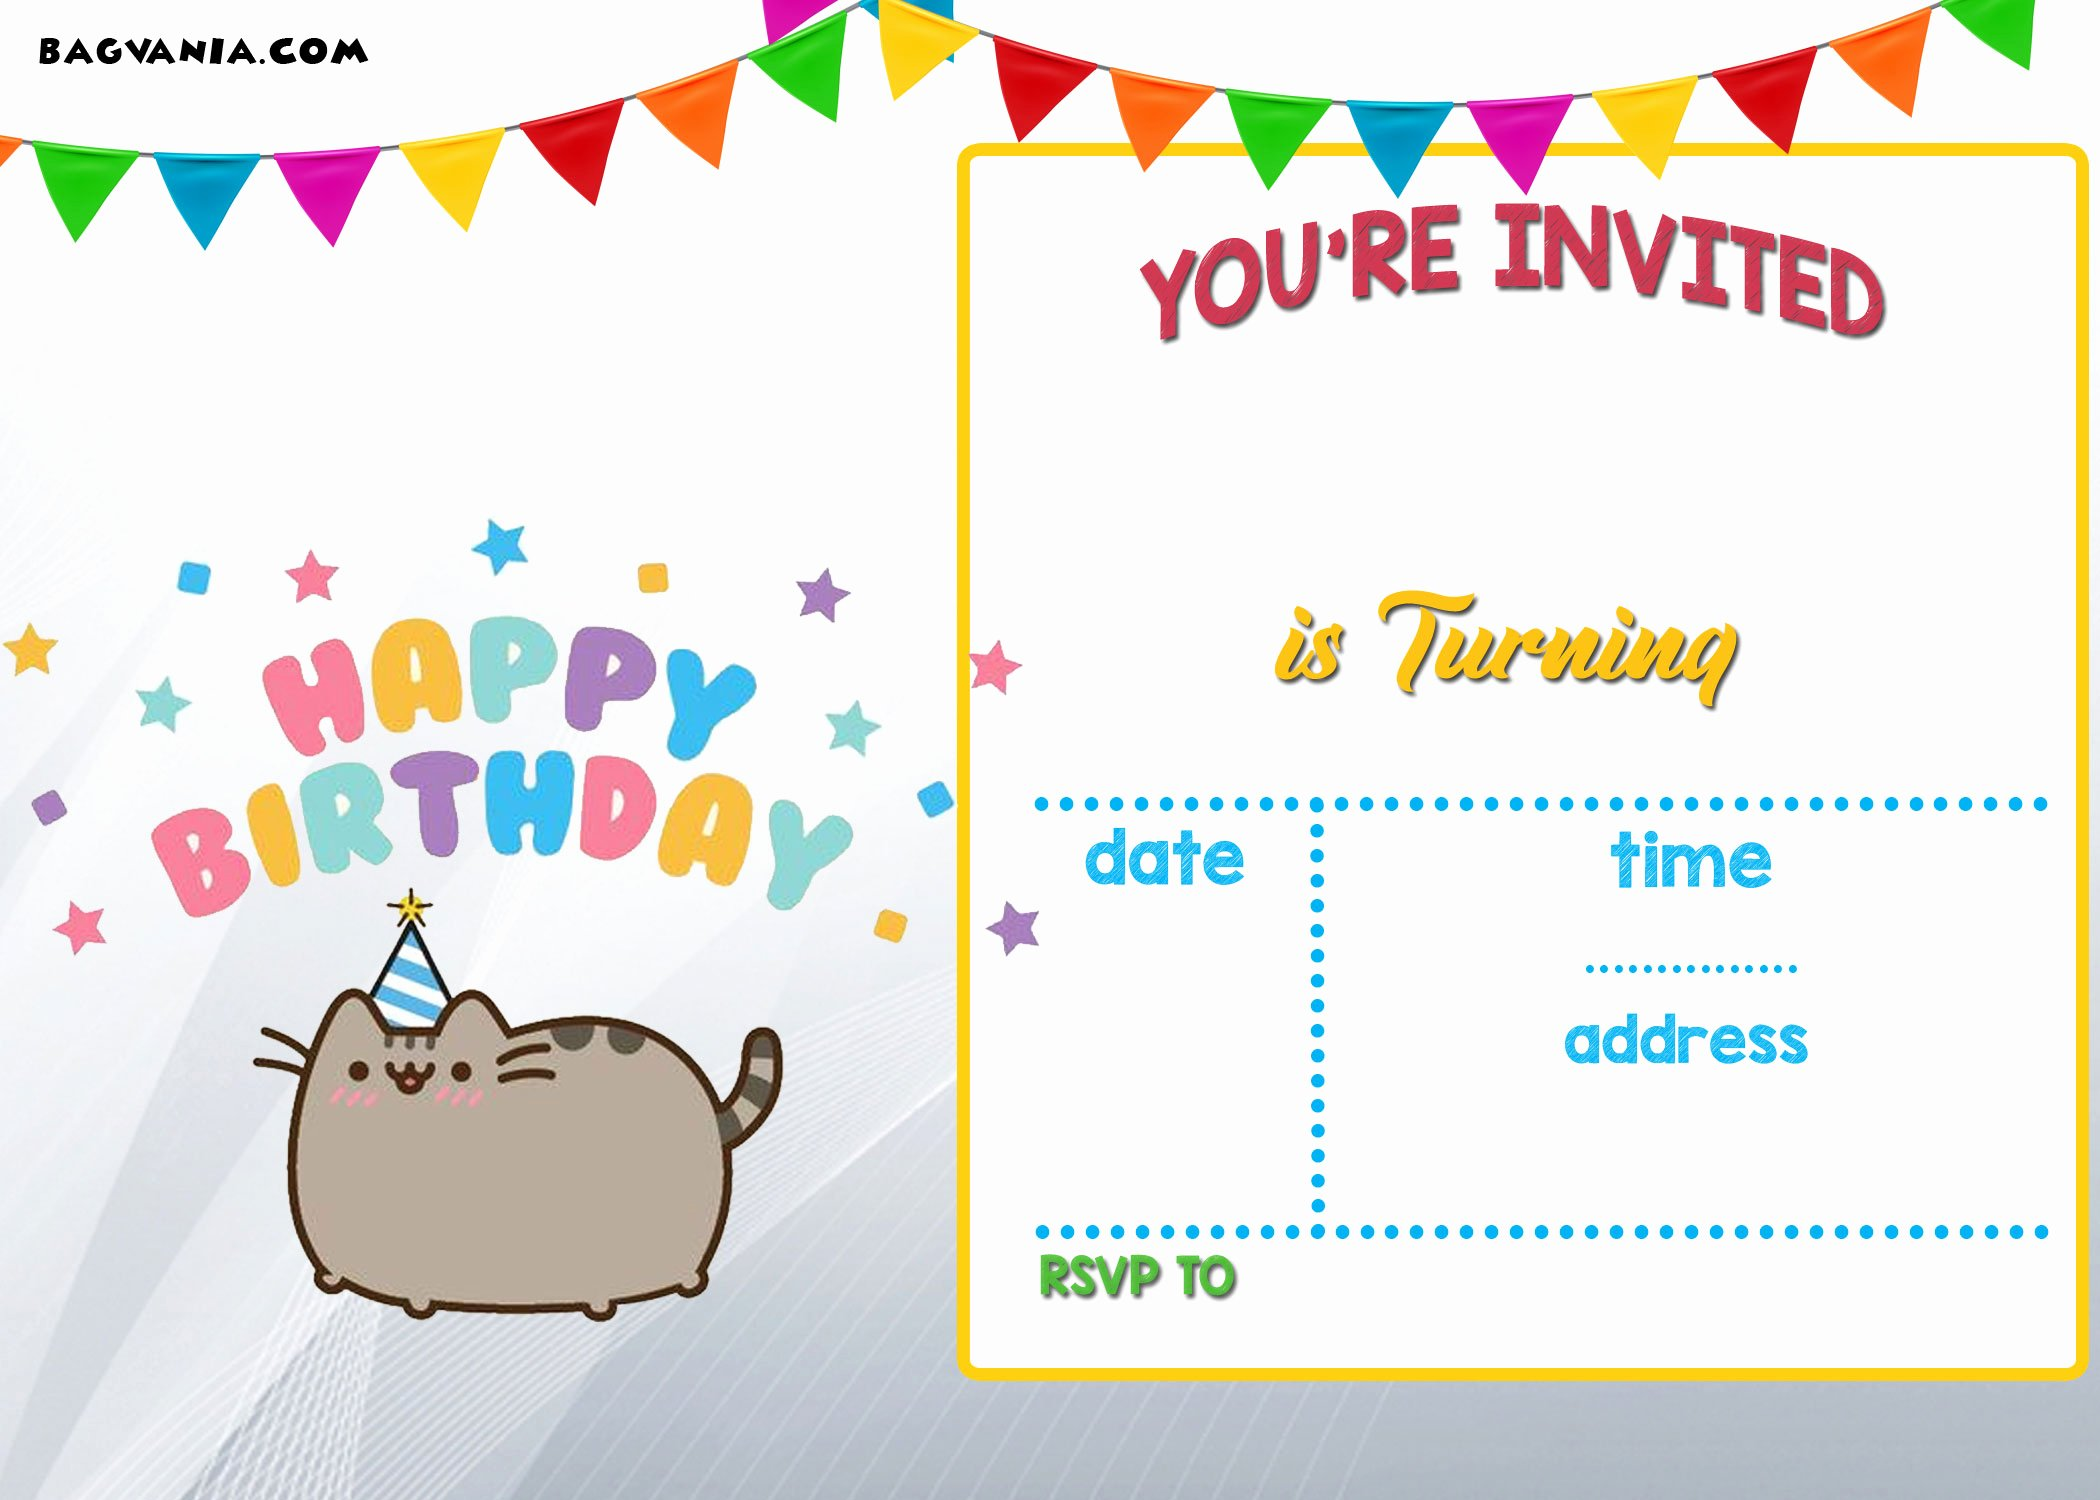 Free Printable Kids Birthday Invitations – Bagvania Free